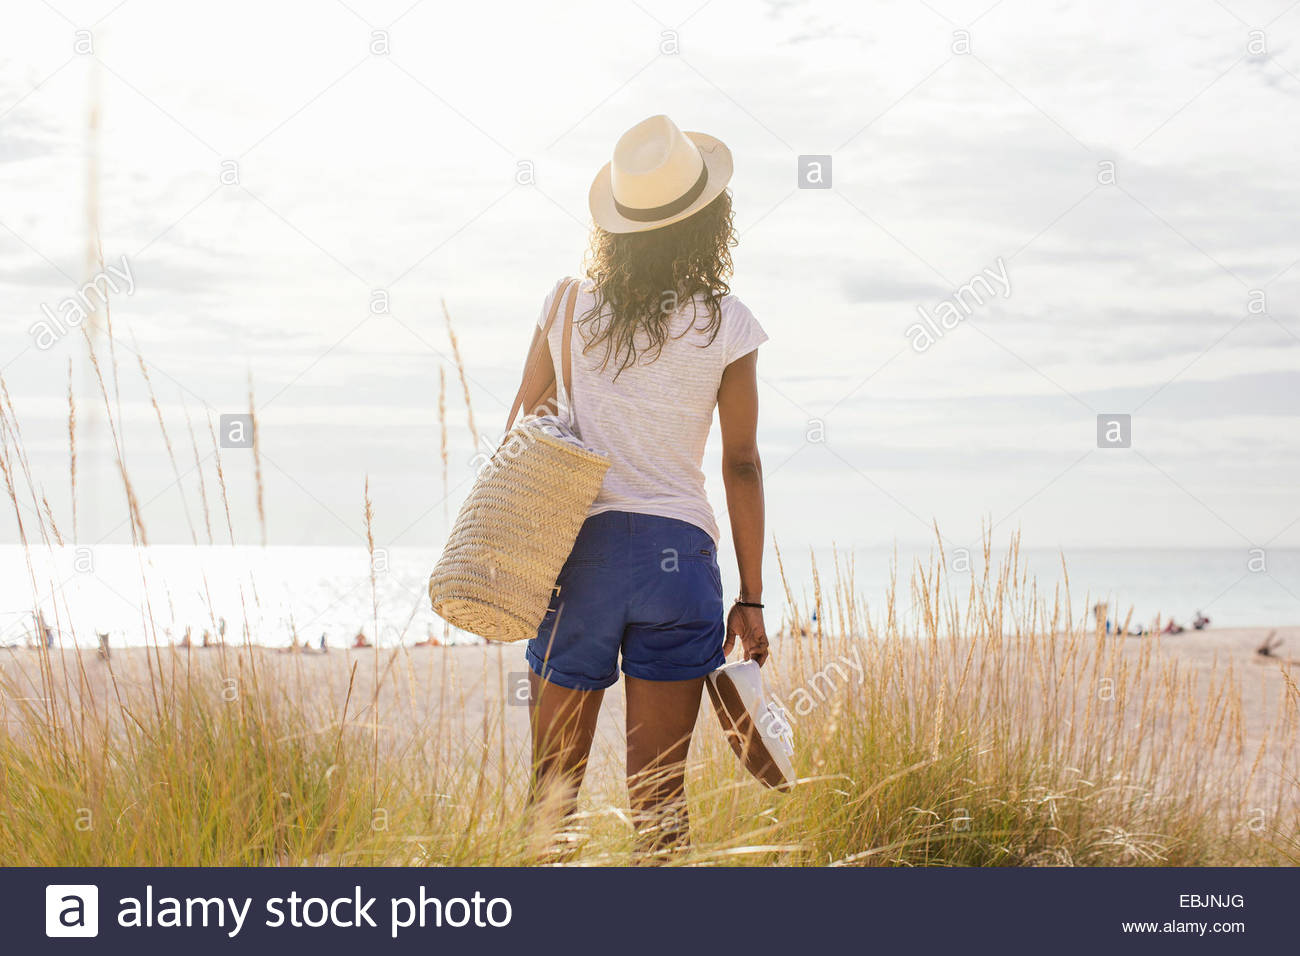 Rear view of young woman with beach bag in dunes, Tuscany, Italy - Stock Image